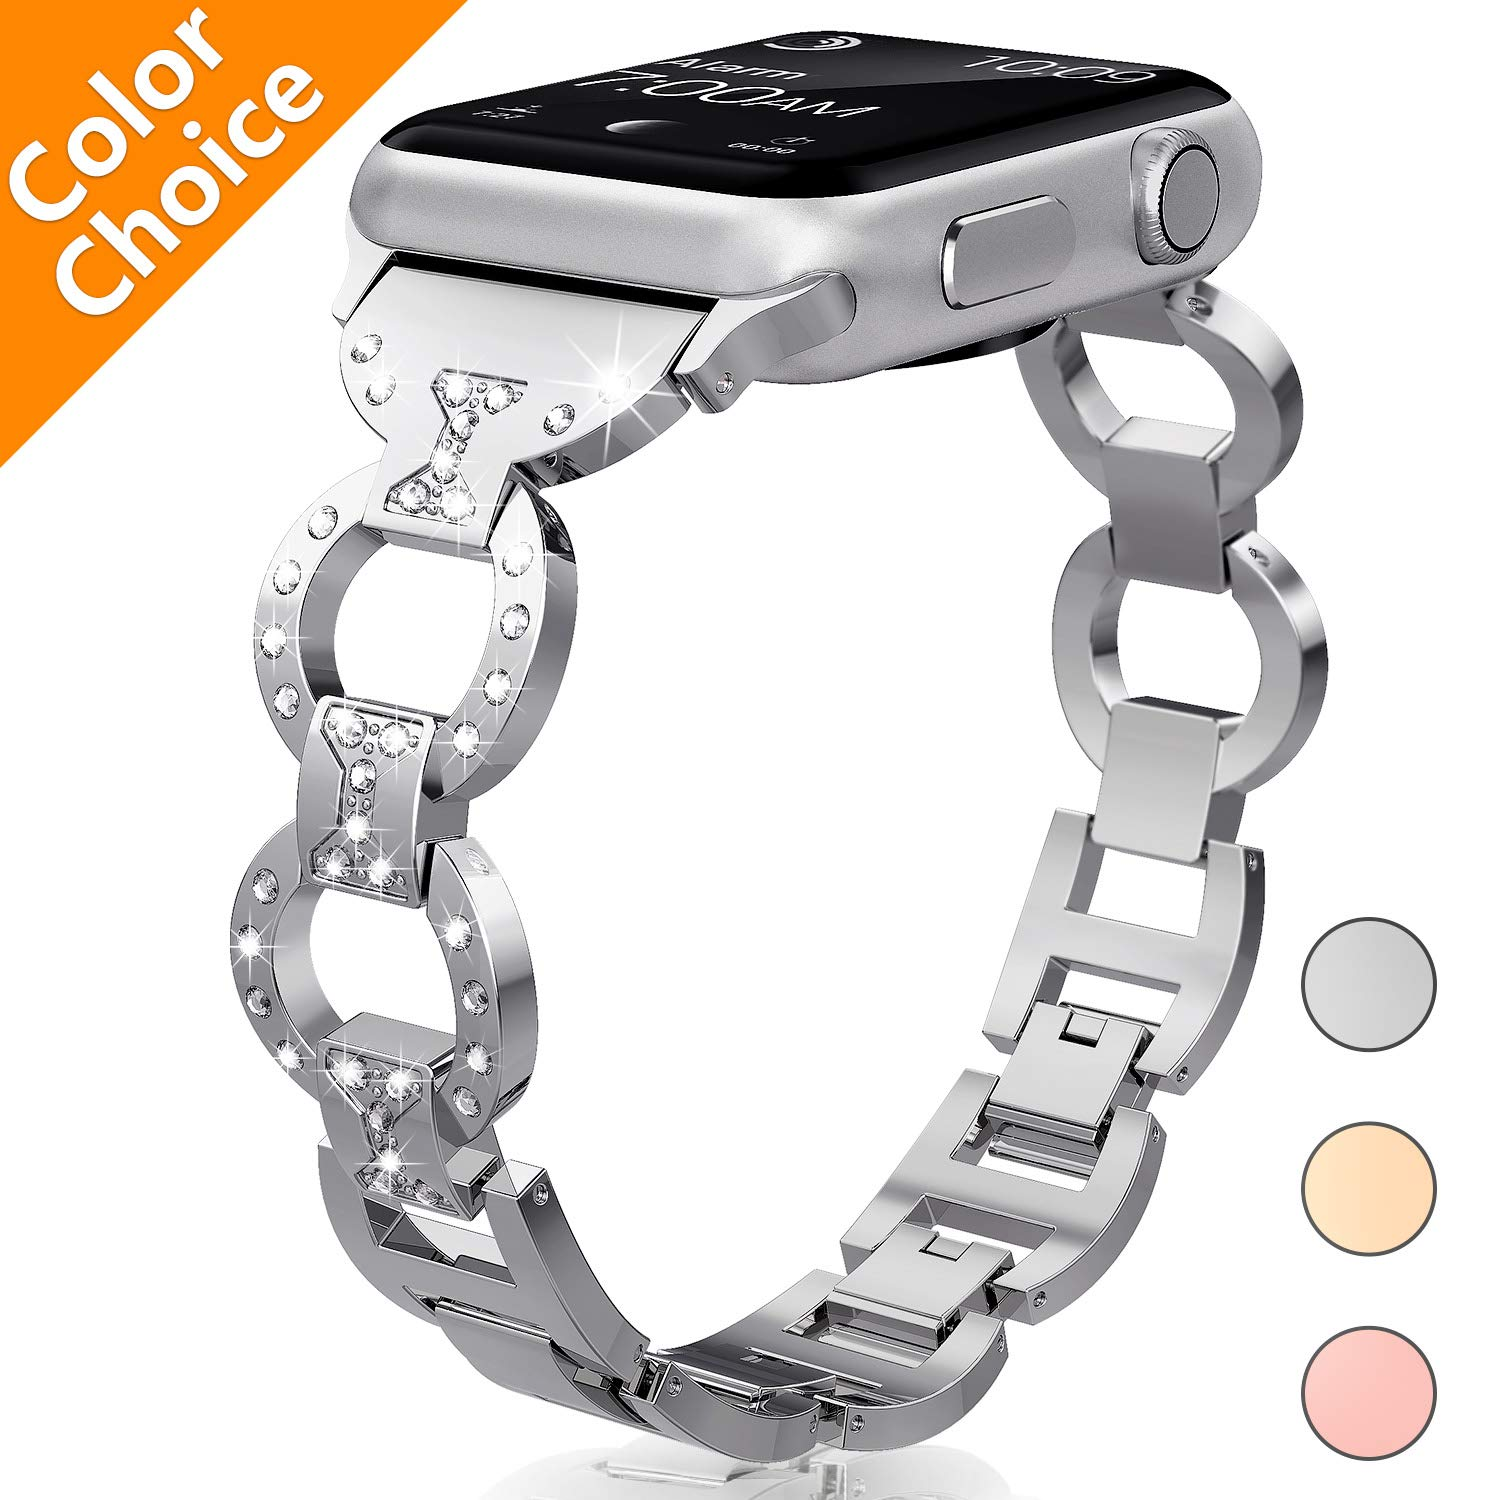 Diamond Rhinestone Stainless Steel Metal Replacement Wristband Strap iWatch